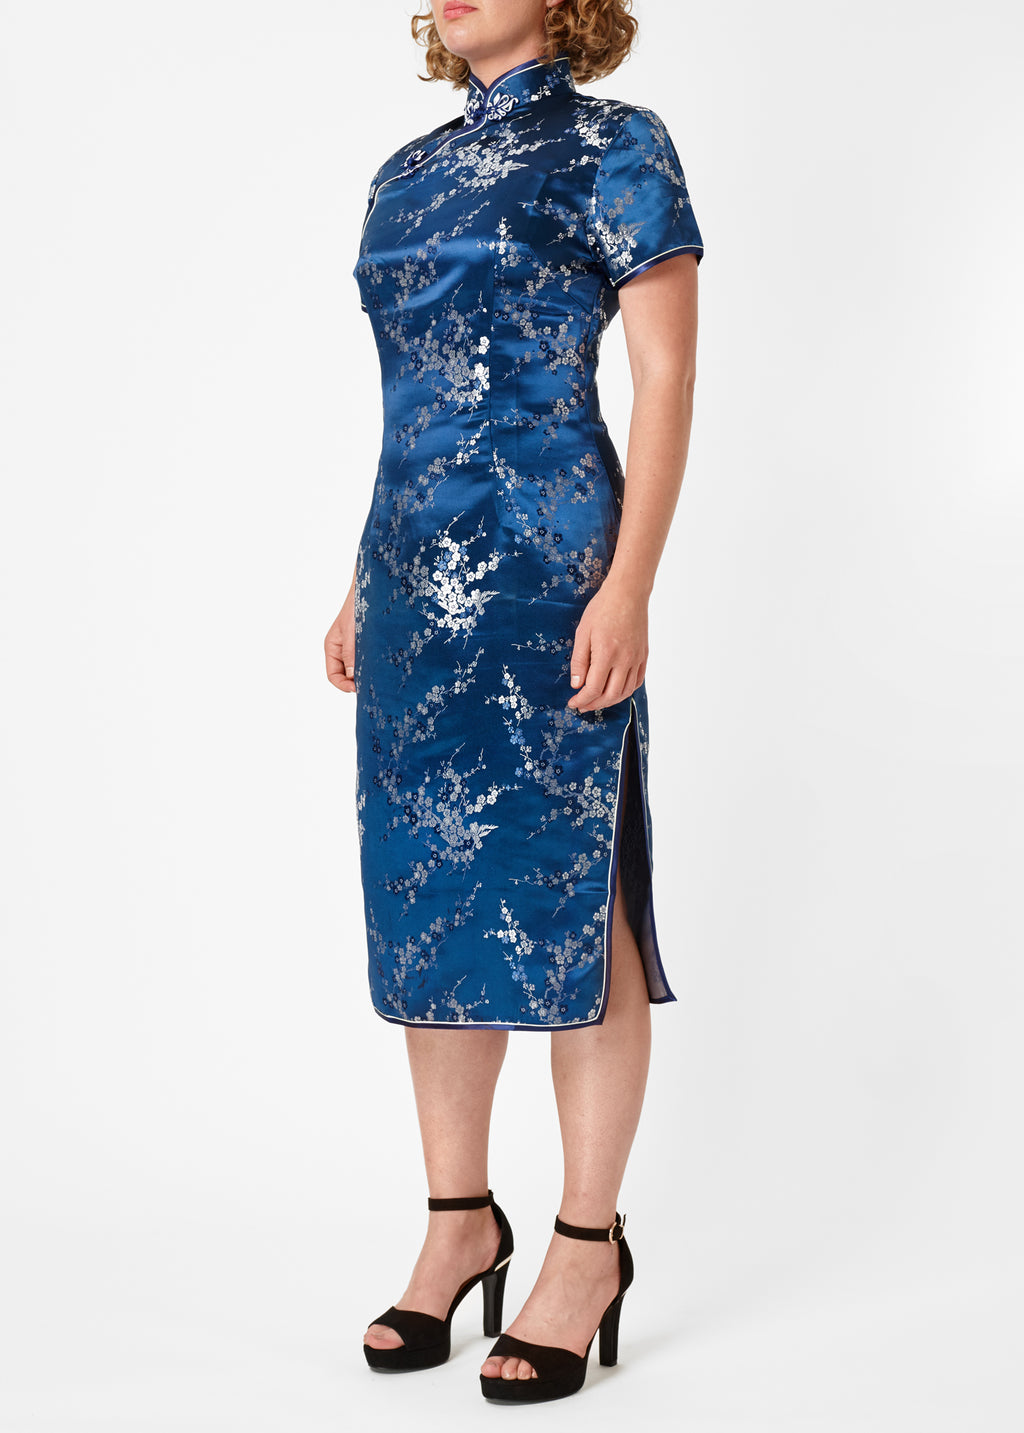 The Cheongsam or Qipao, is a feminine body-hugging dress with distinctive Chinese features of mandarin collar, side splits and hand stitched flower and knot frog fastenings. Manufactured in authentic high quality silk/rayon brocade in a rich blue with silver cherry blossom design - a symbol of female beauty and love.